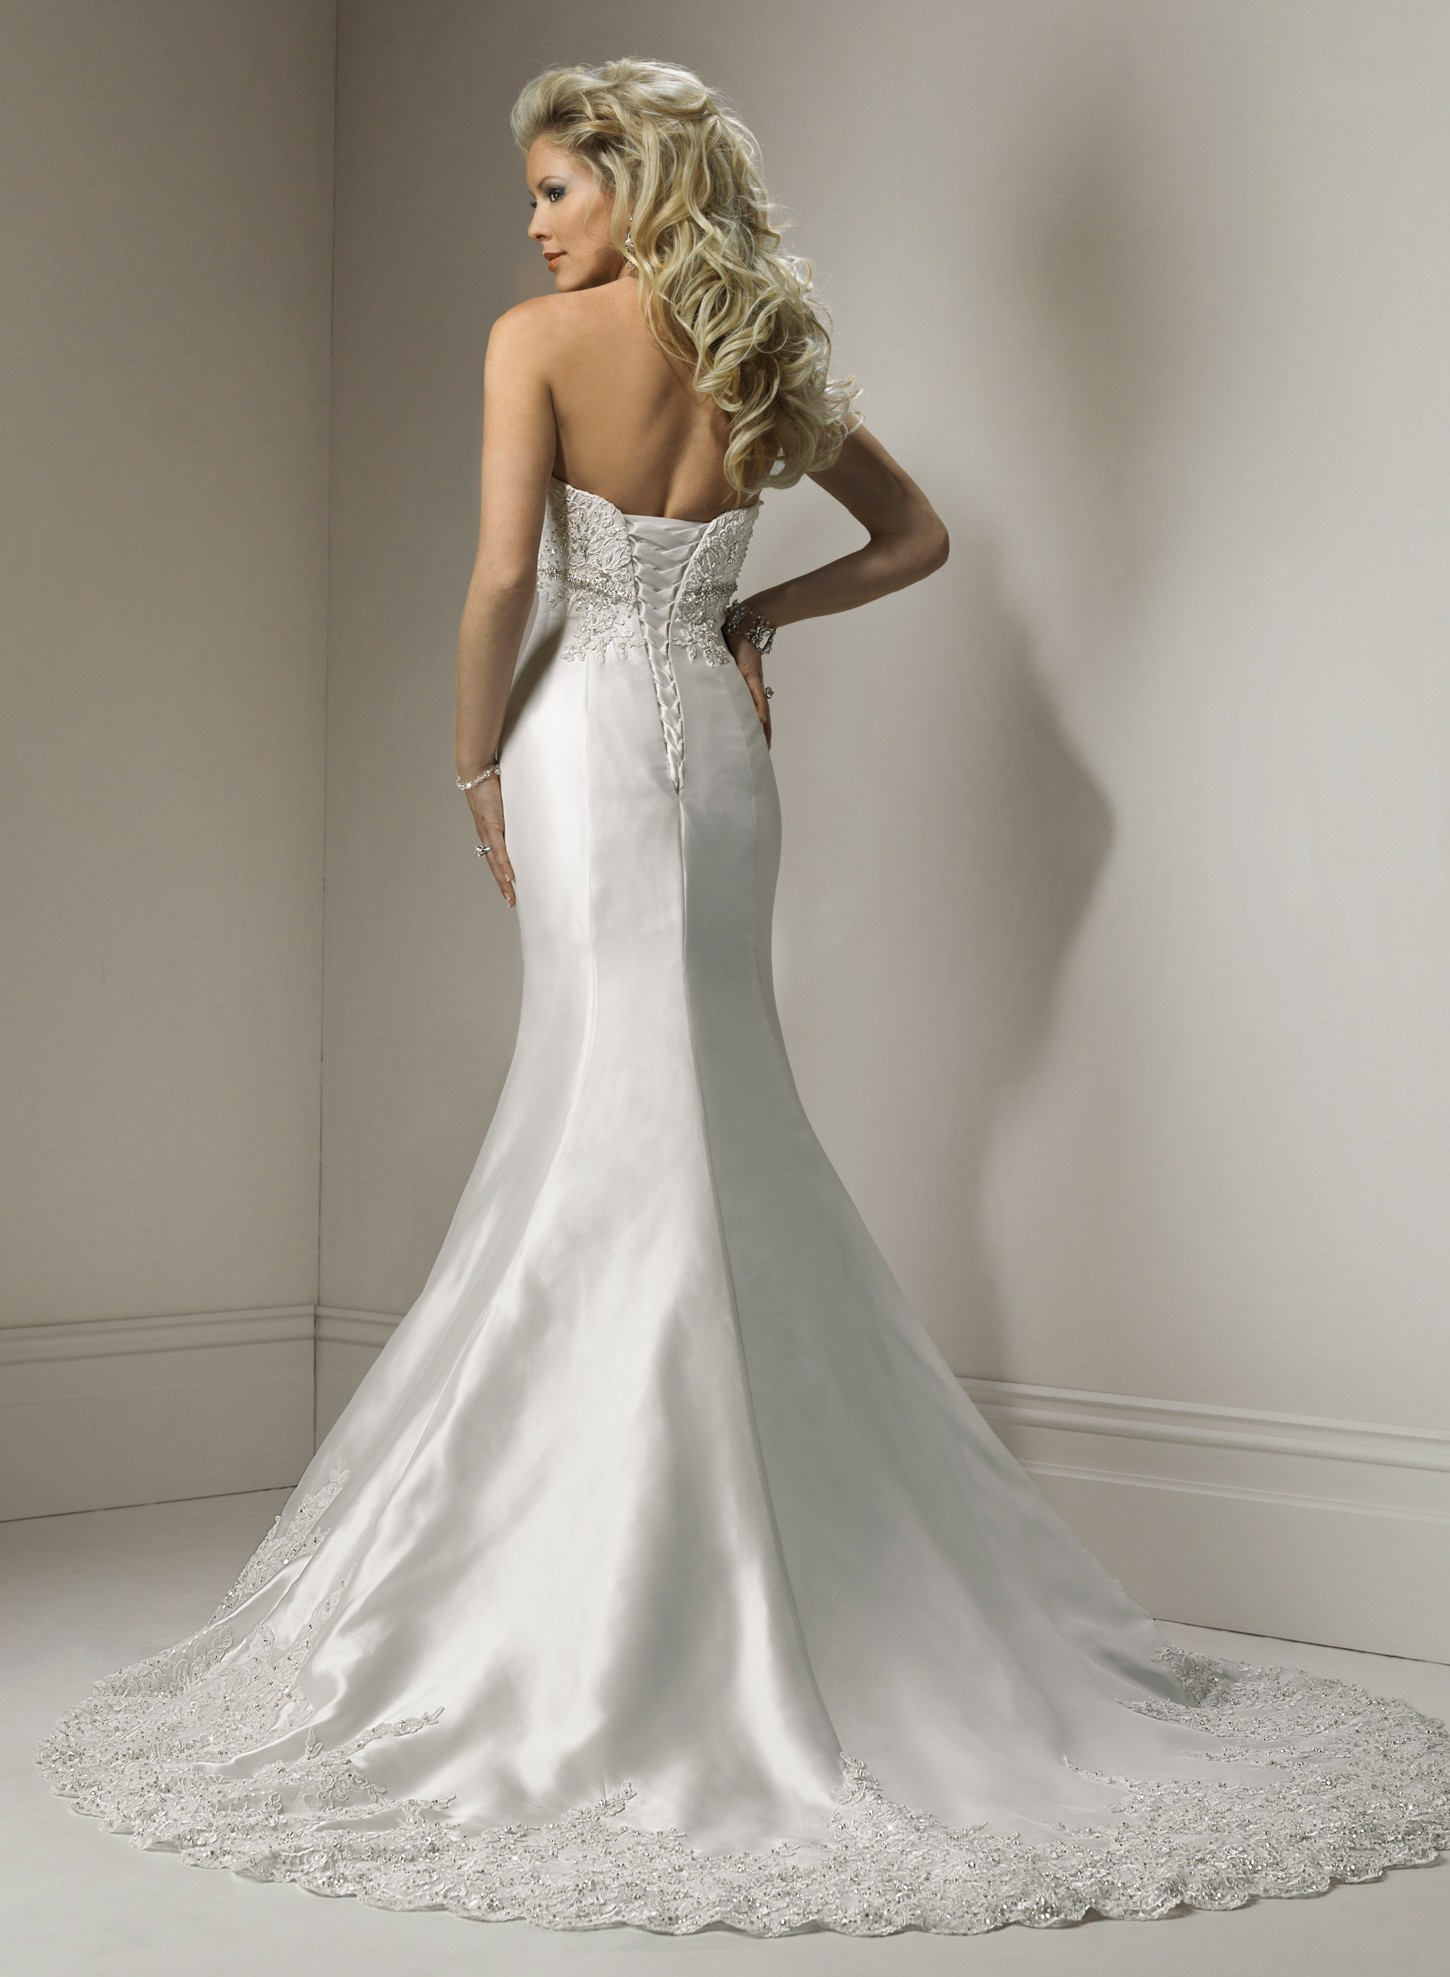 Trendy Mermaid Wedding Dress Photograph Up-to-date Variety